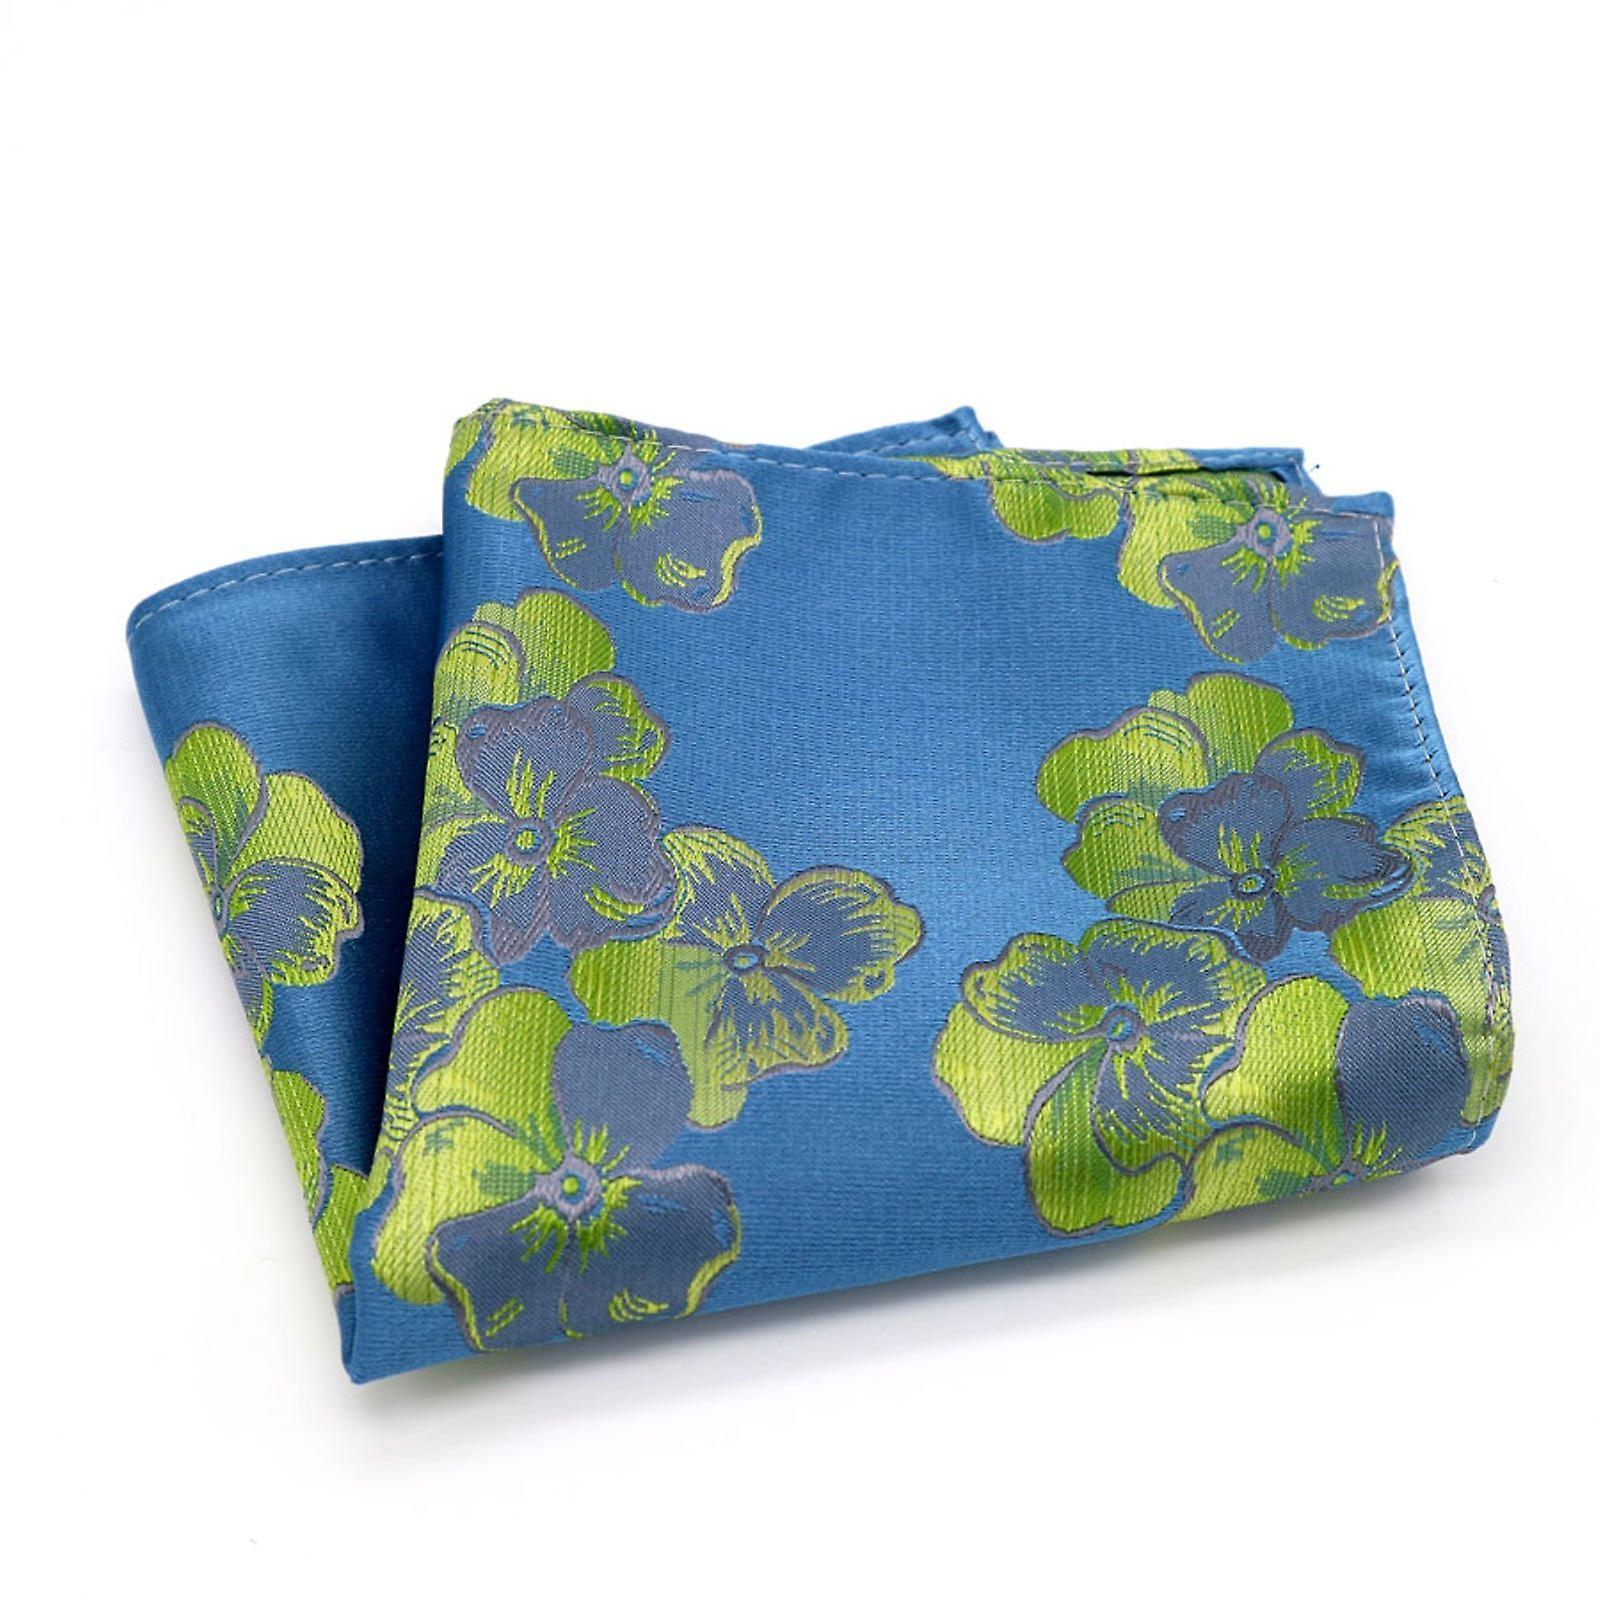 Blue & lime green mixed wedding floral pocket square